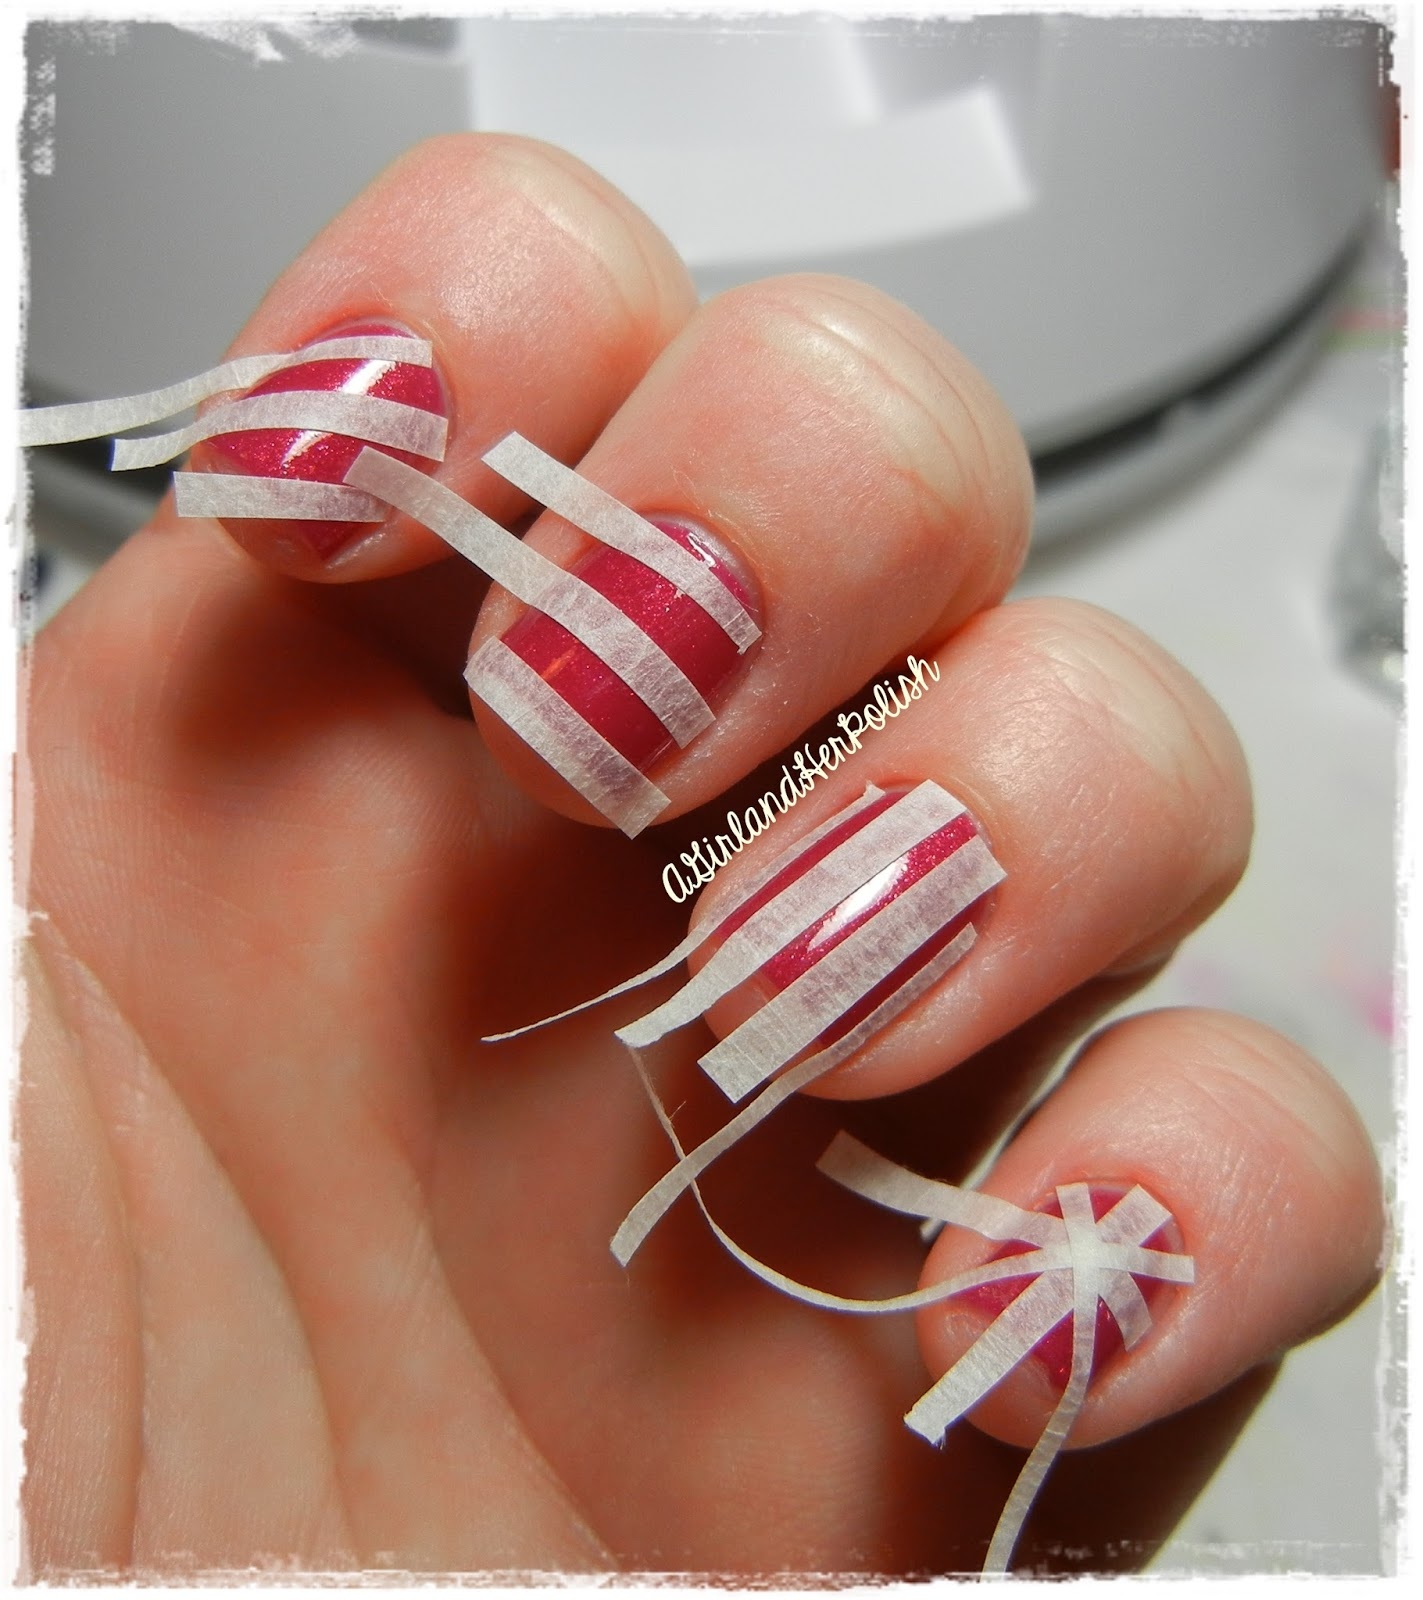 How To Do Nail Designs At Home With Toothpicks | 2017 ...